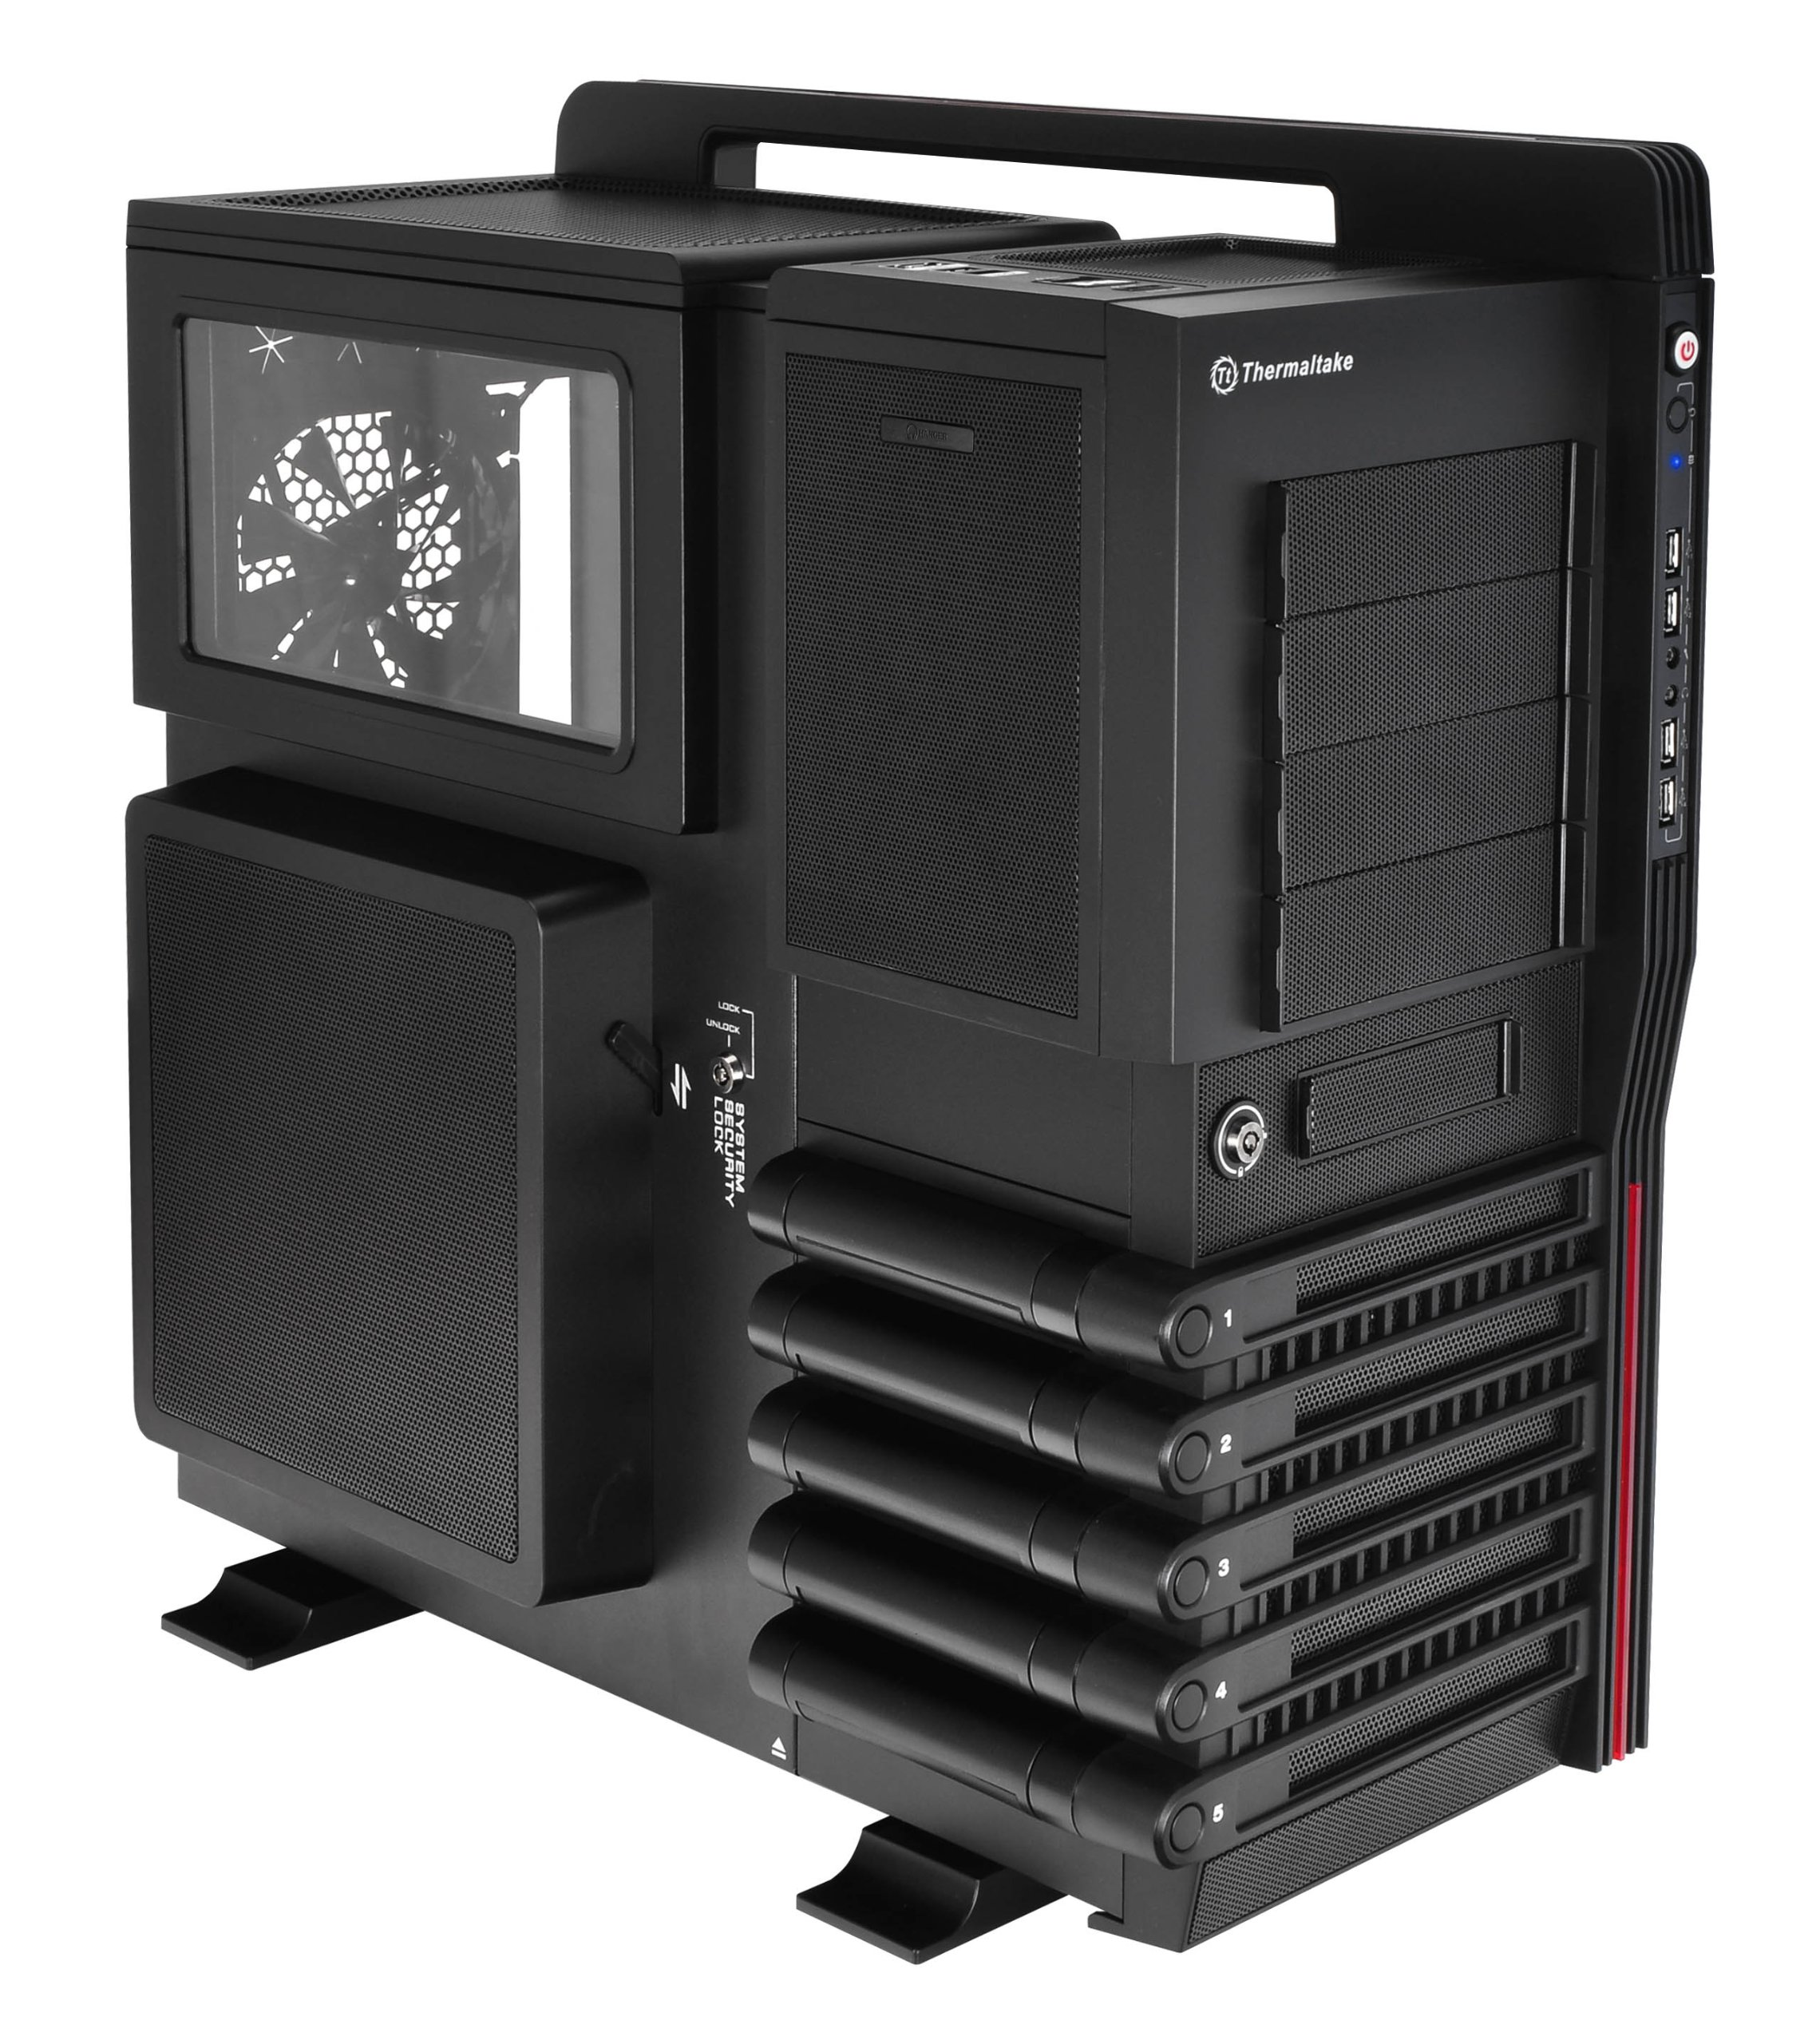 Thermaltake LEVEL 10 GT Super Gaming Modular Full Tower Computer Case - VN10001W2N Black